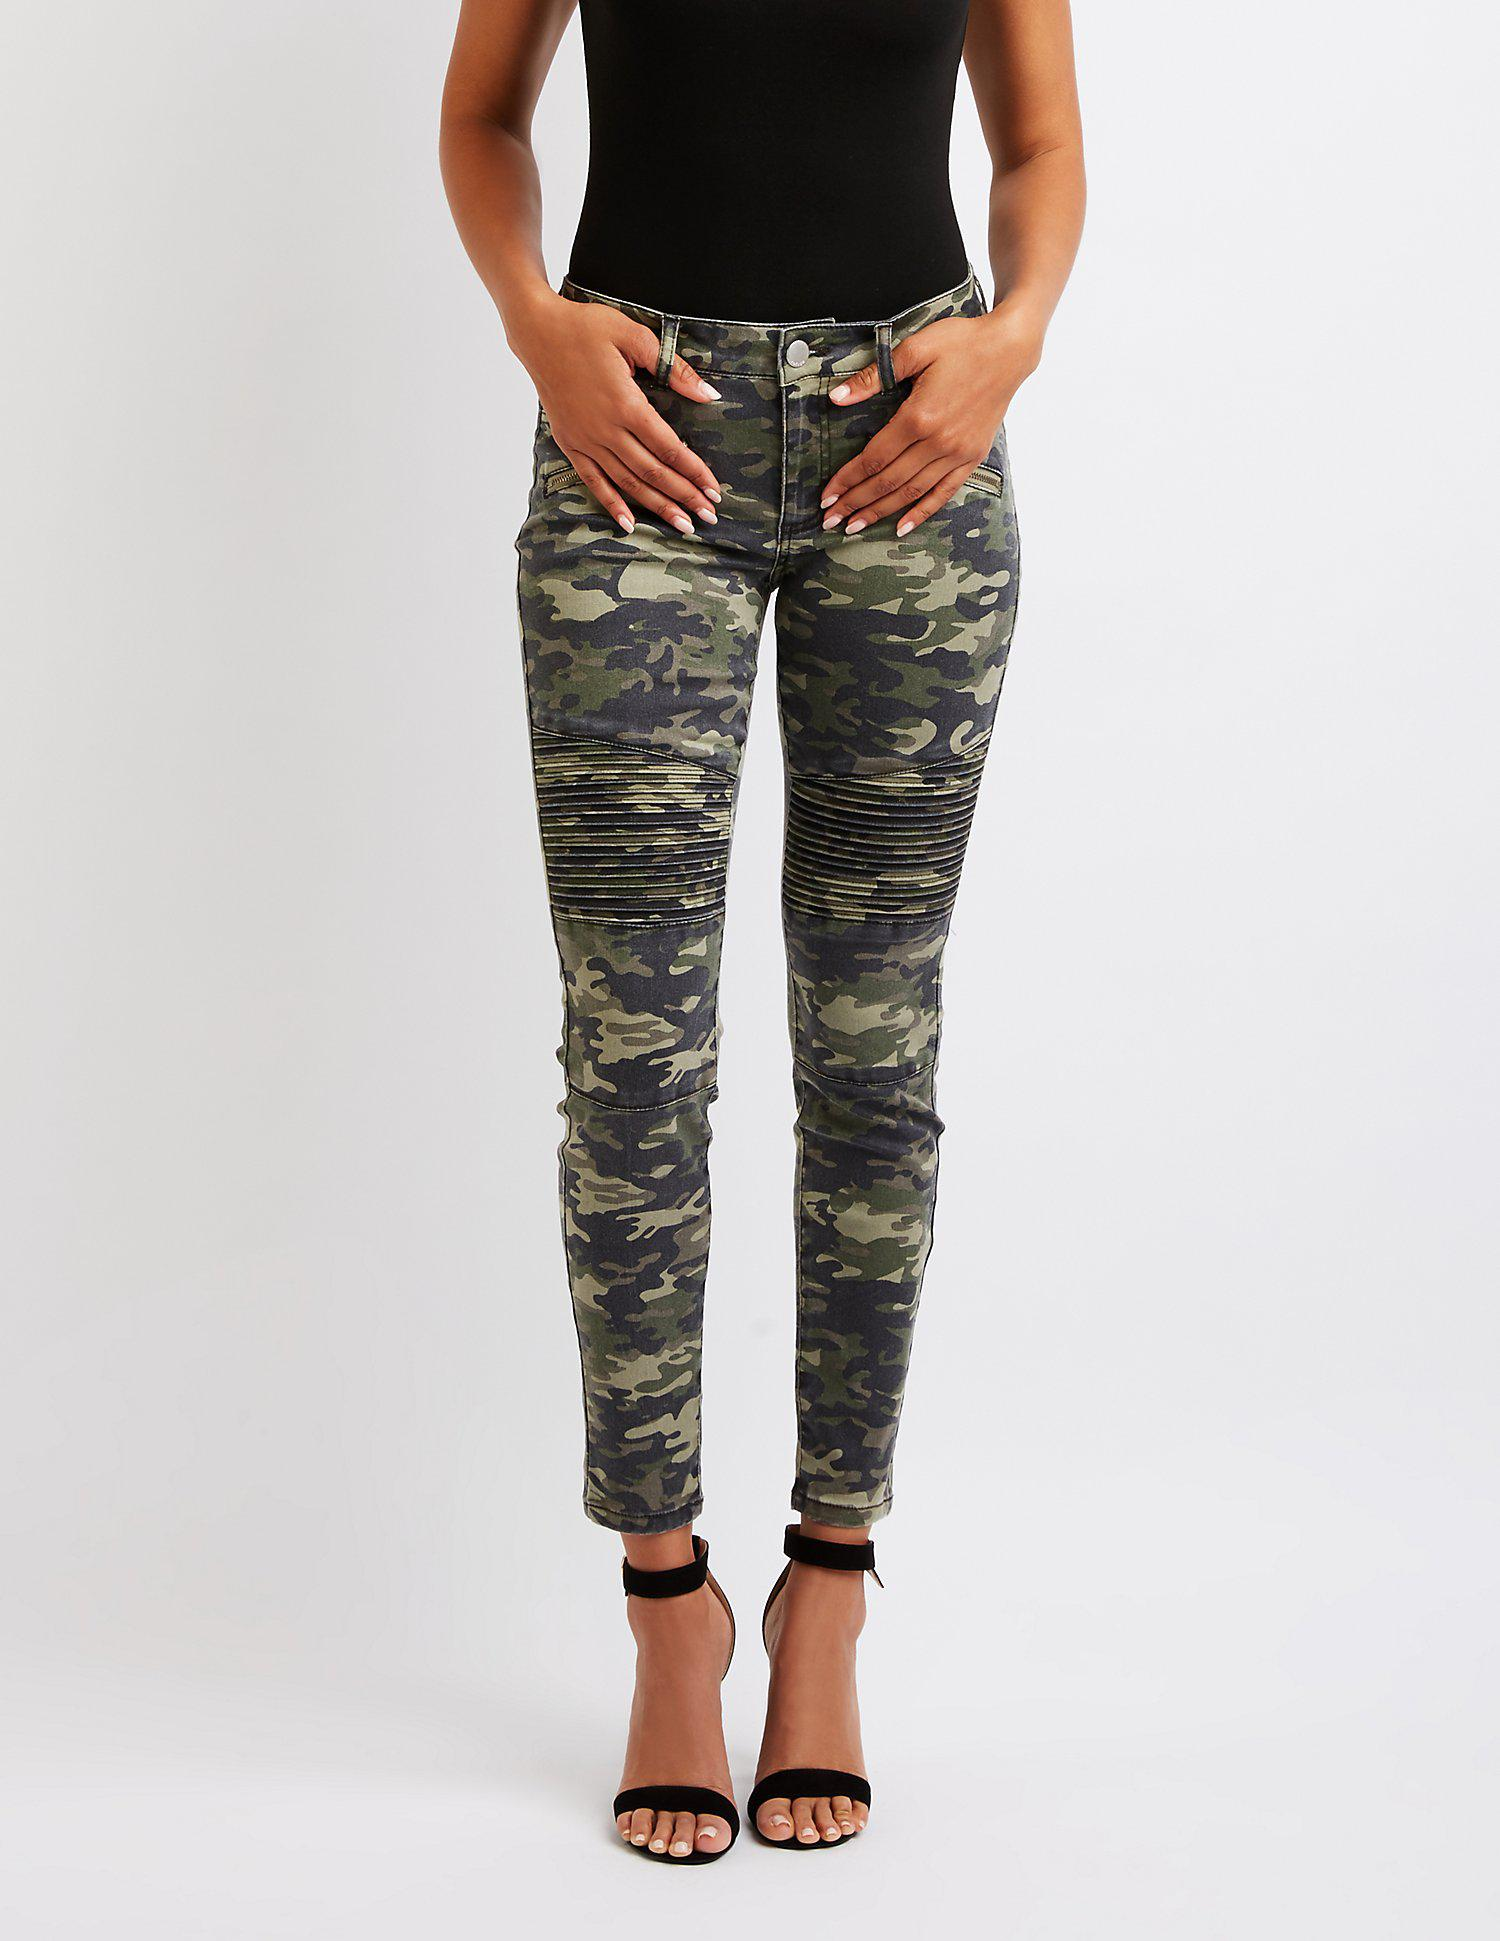 615a1cb88 Lyst - Charlotte Russe Refuge Camo Moto Skinny Jeans in Green